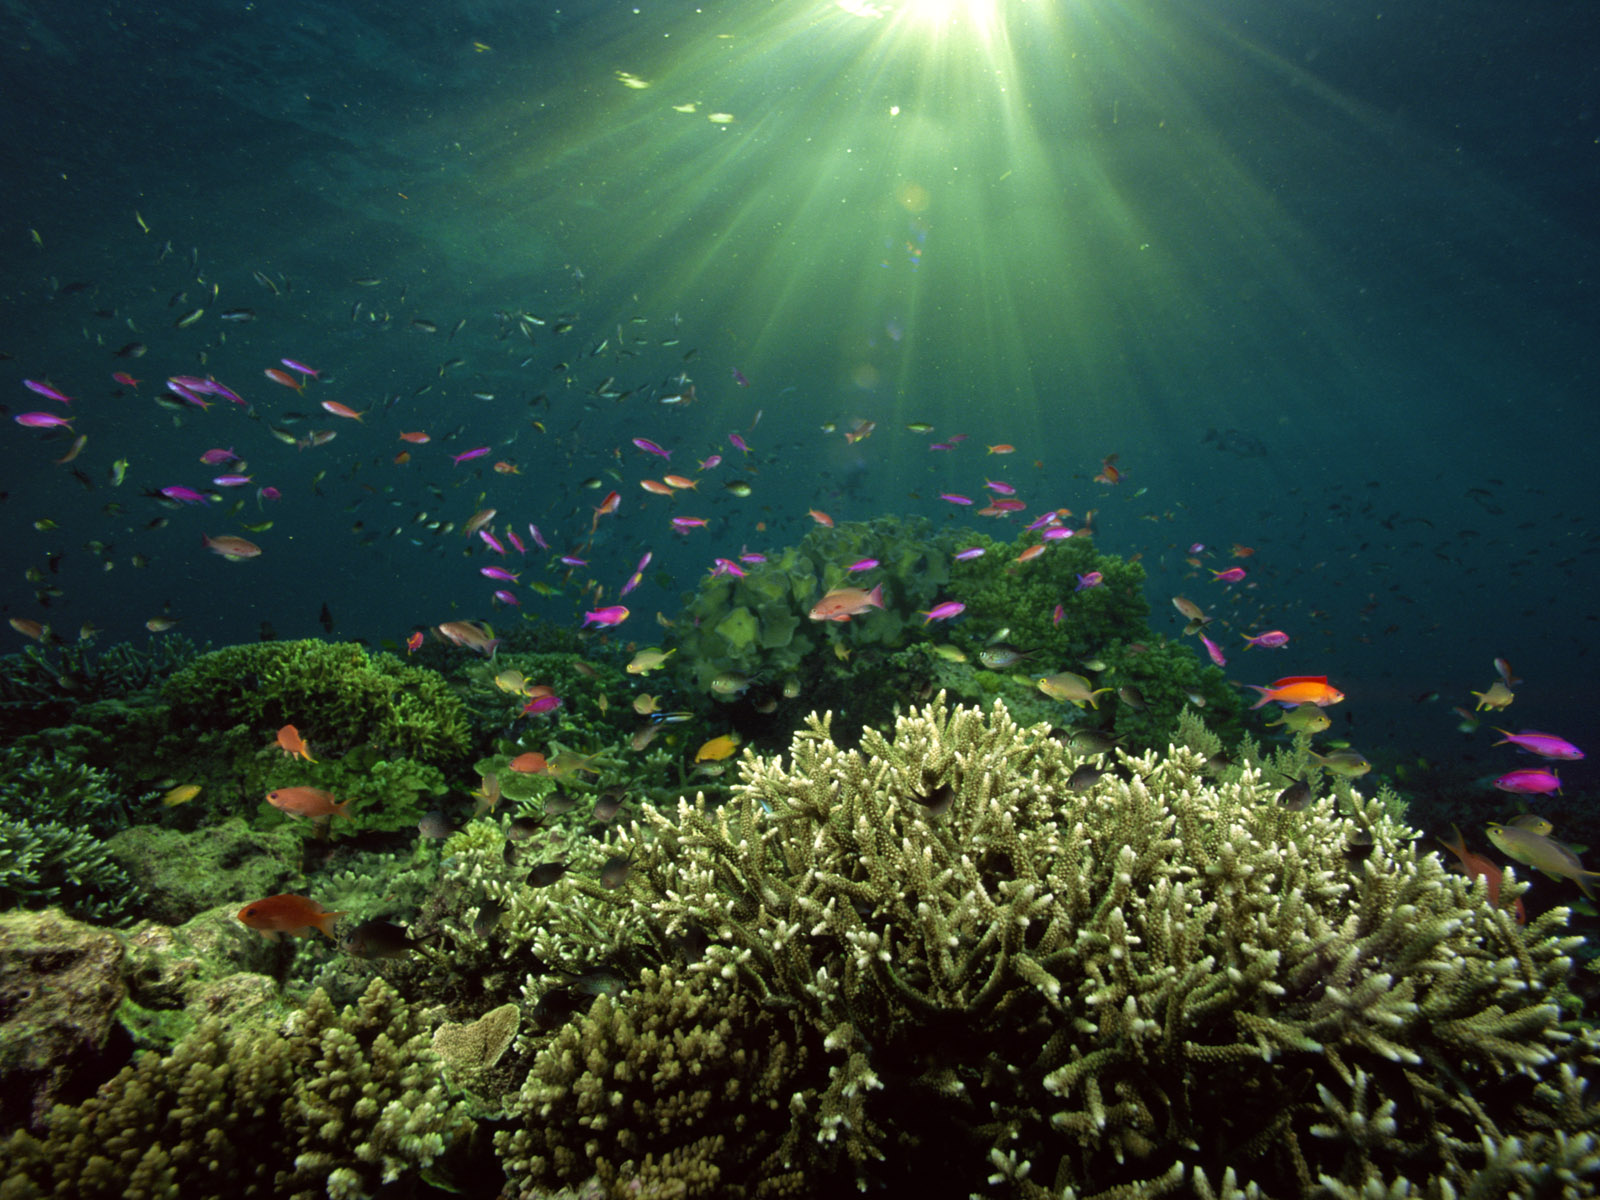 Underwater desktop backgrounds wallpapersafari - Desktop wallpaper 1600x1200 ...